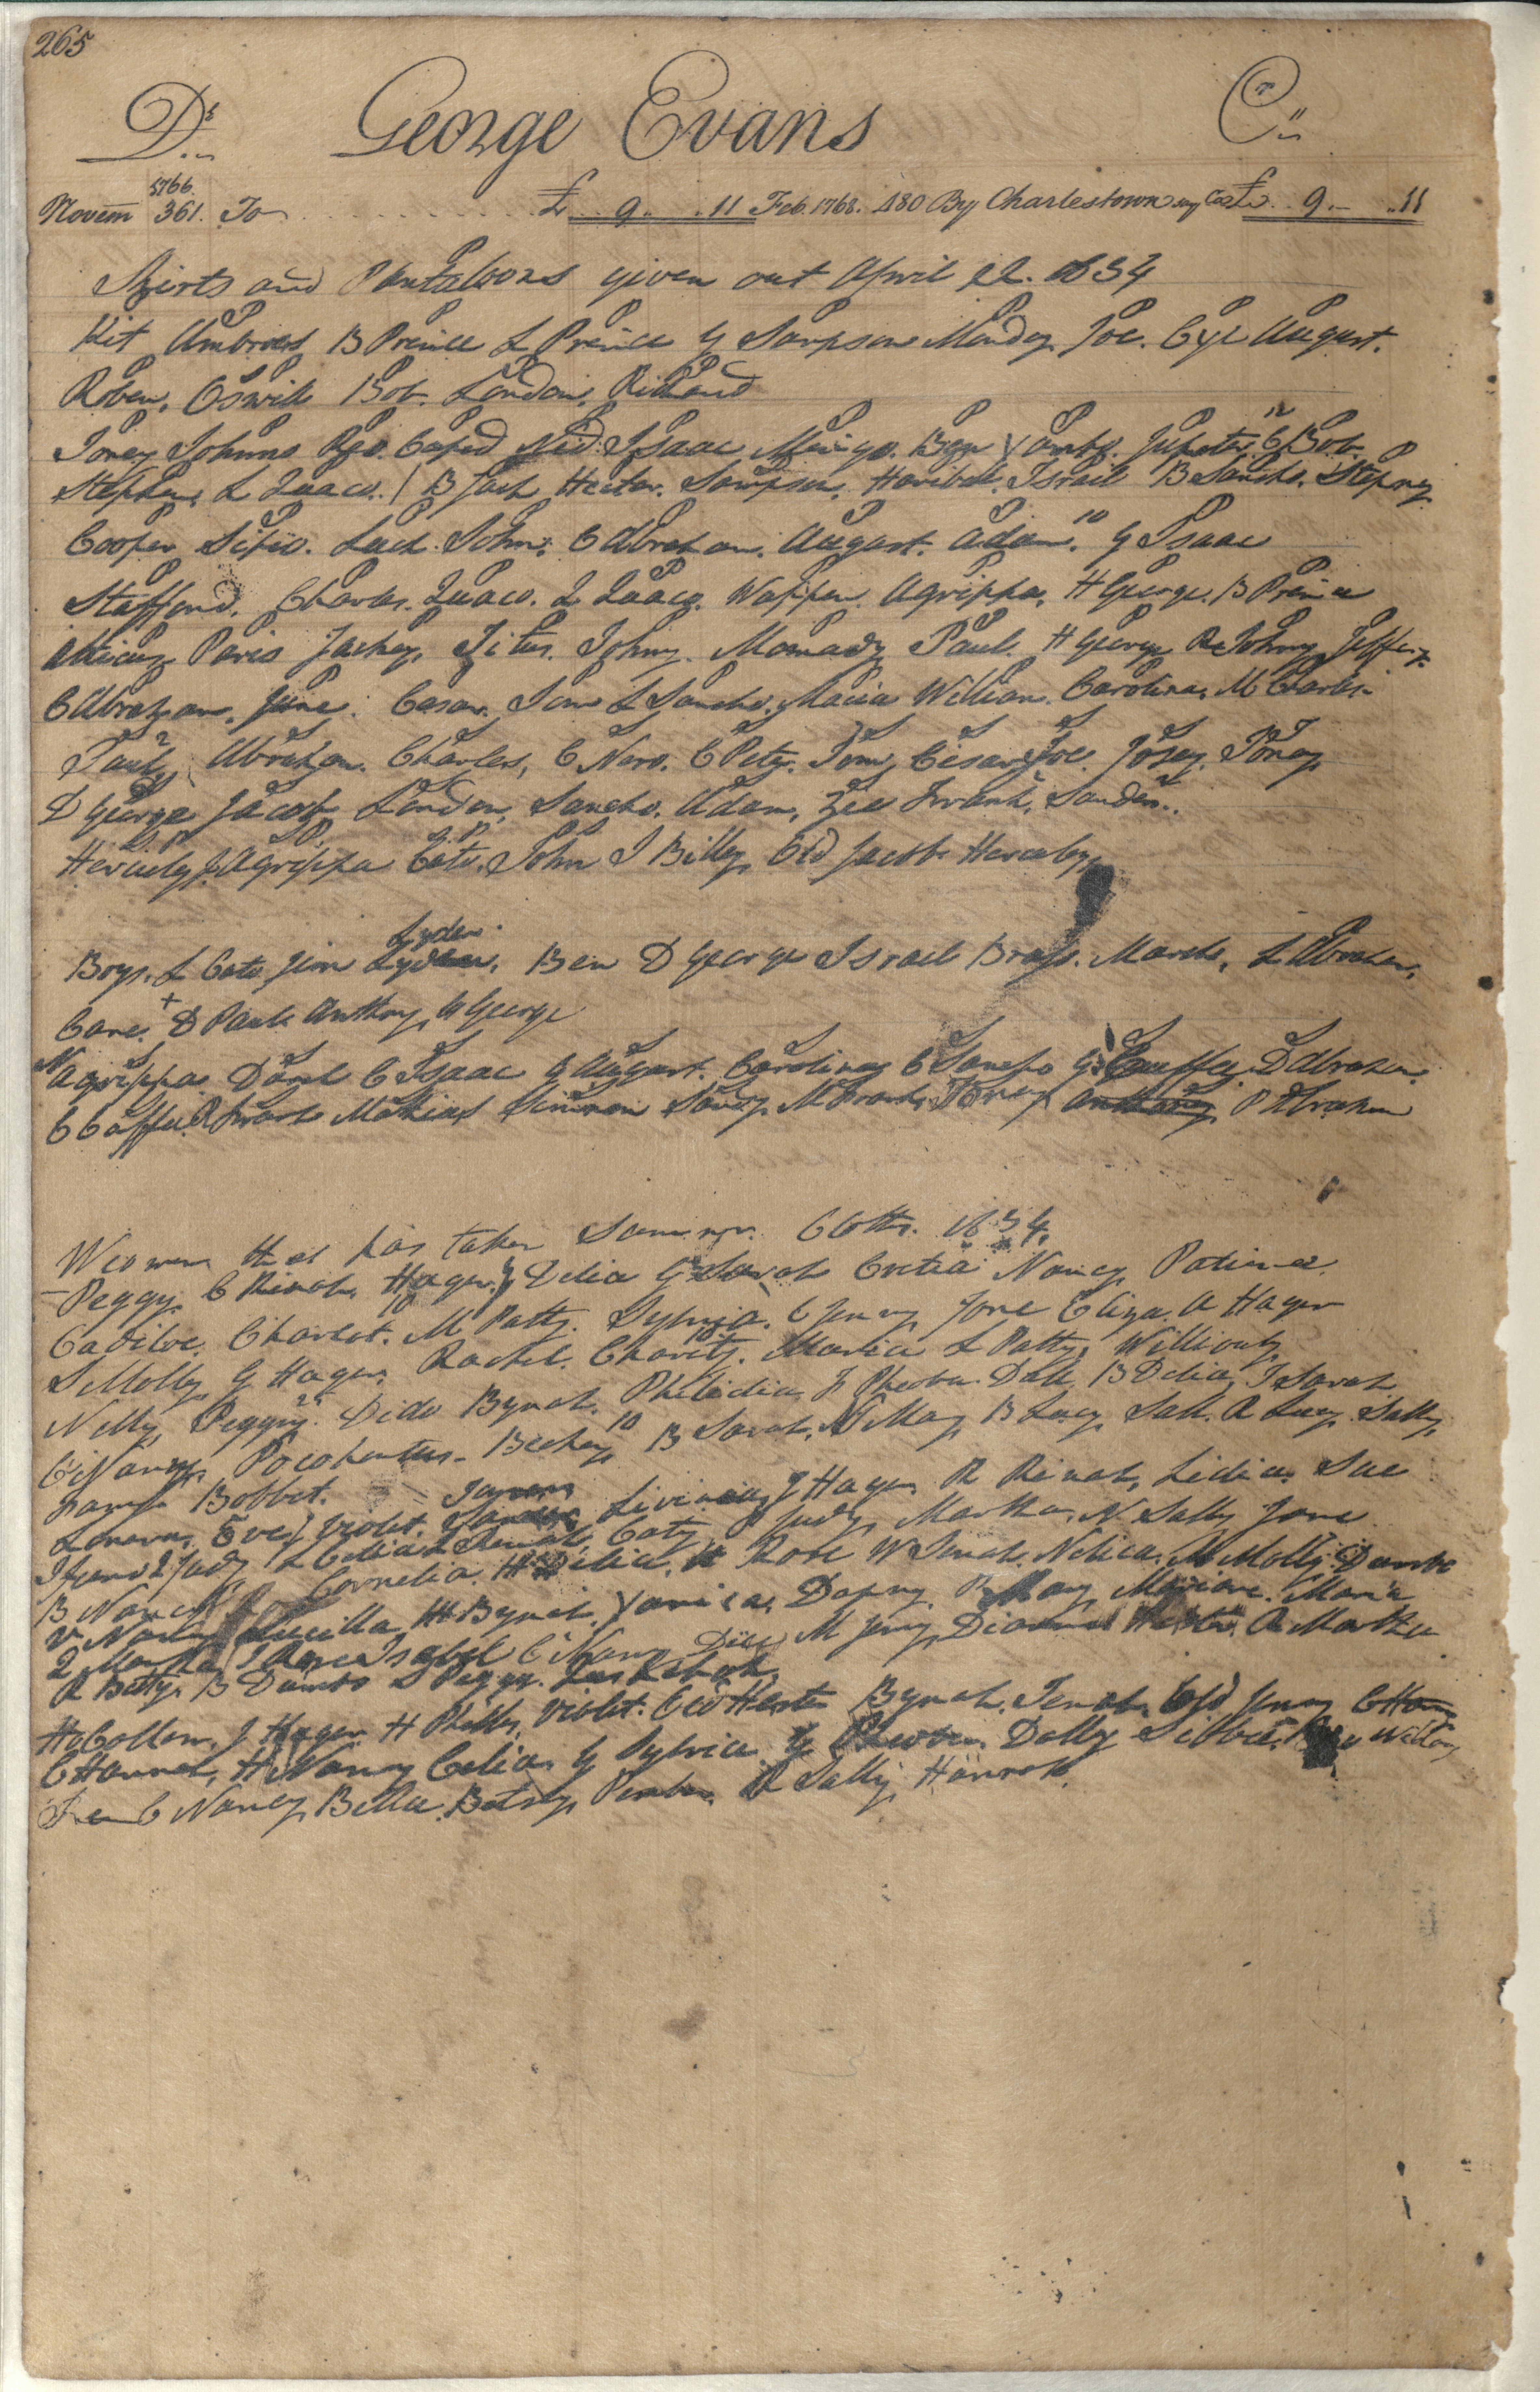 Plowden Weston's Business Ledger, page 265